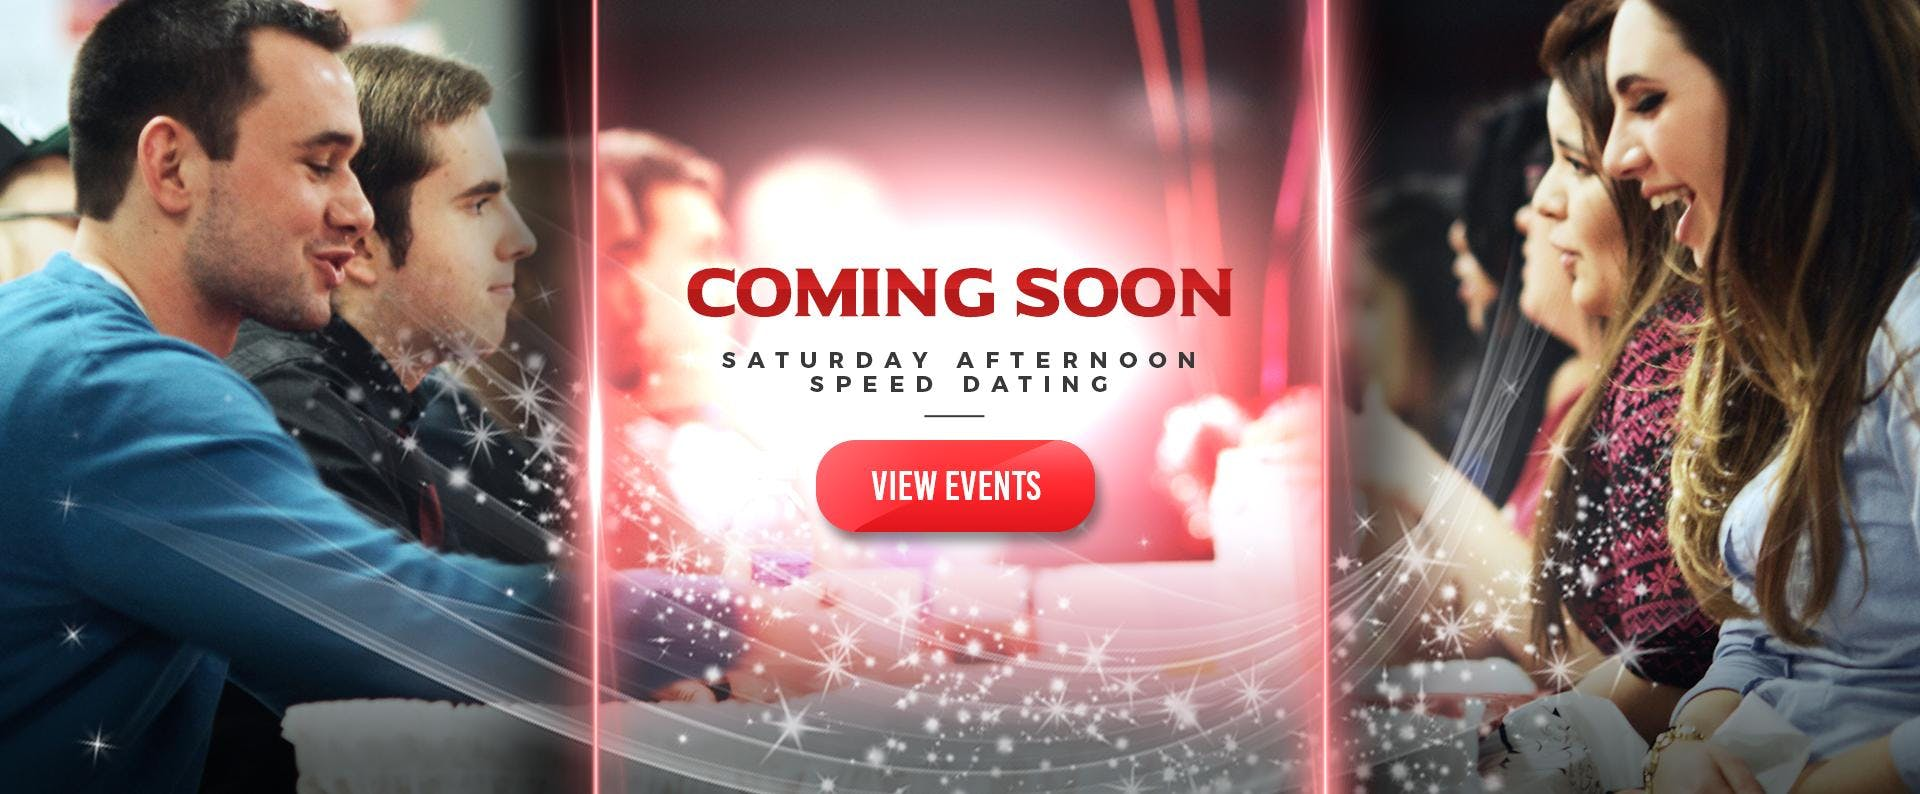 SPEED DATING SATURDAY AFTERNOON FOR 30-40 AGE GROUP LADIES SOLD OUT